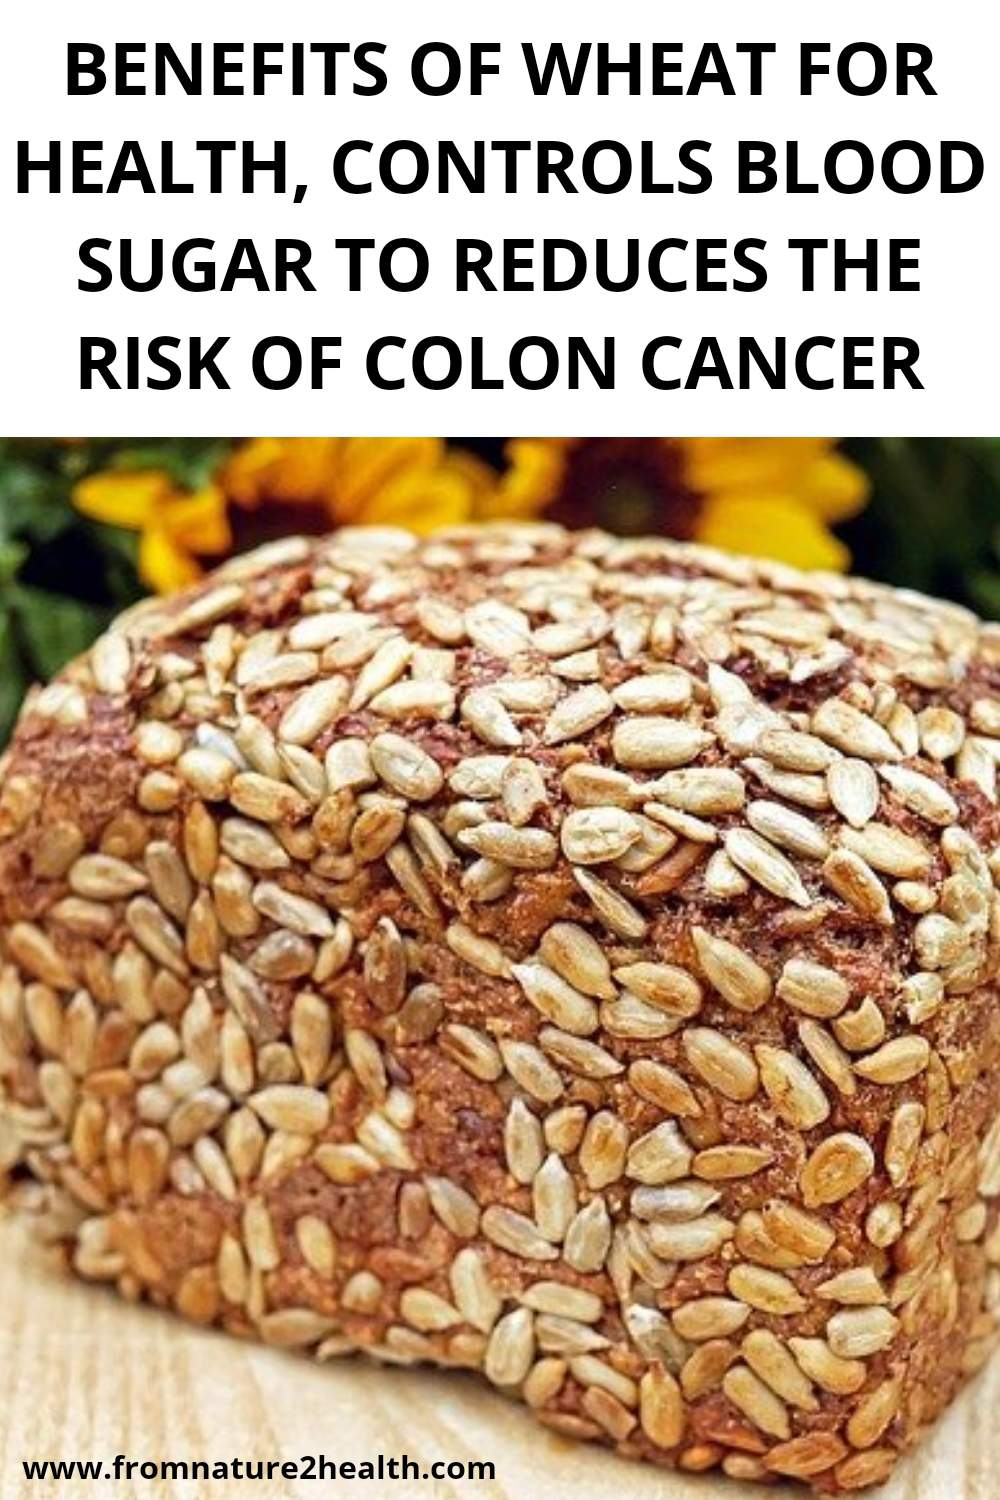 Benefits of Wheat for Health, Controls Blood Sugar to Reduces the Risk of Colon Cancer